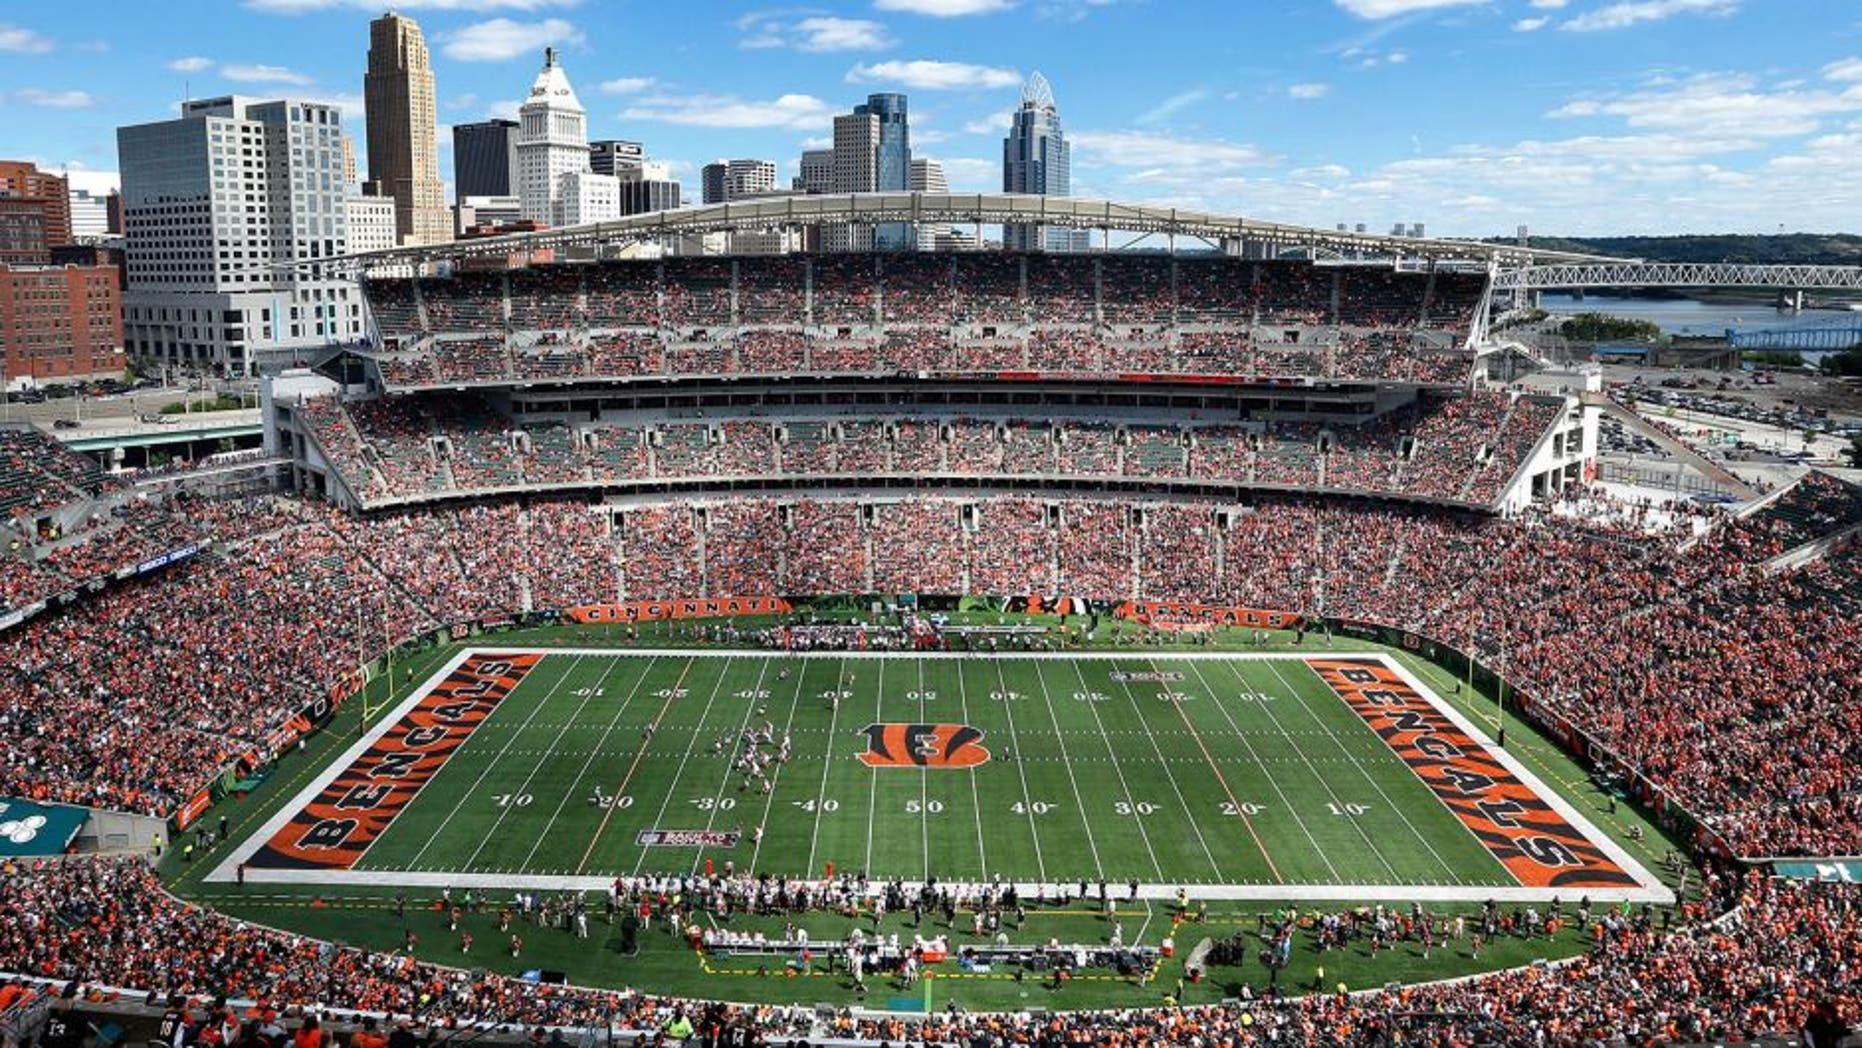 CINCINNATI, OH - SEPTEMBER 14: General view of the stadium from the upper level during the game between the Atlanta Falcons and Cincinnati Bengals at Paul Brown Stadium on September 14, 2014 in Cincinnati, Ohio. The Bengals won the game 24-10. (Photo by Joe Robbins/Getty Images) *** Local Caption ***